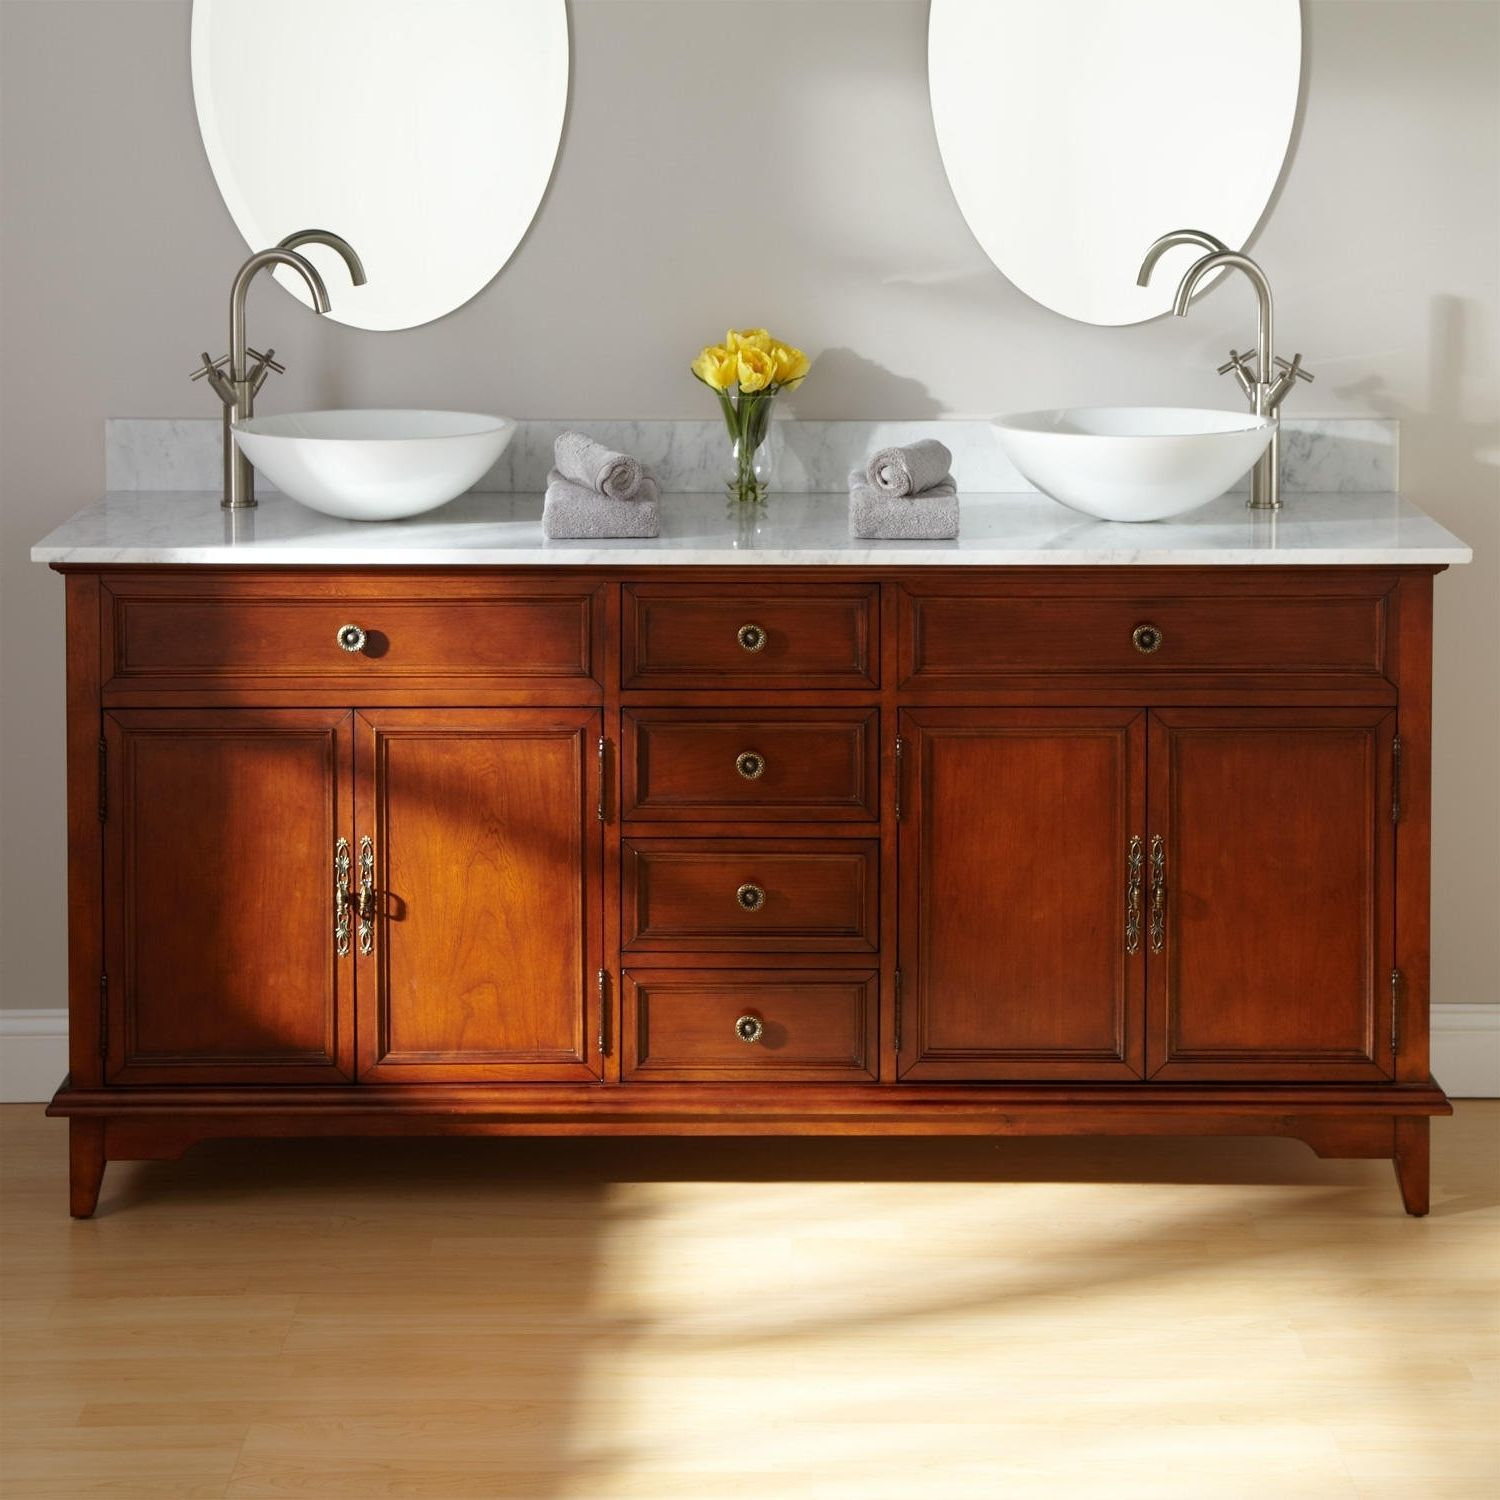 Mahogany bathroom furniture - Furniture Classic Look Of Brown Mahogany Bathroom Vanity Cabinet Designs With Double White Vessel Sink